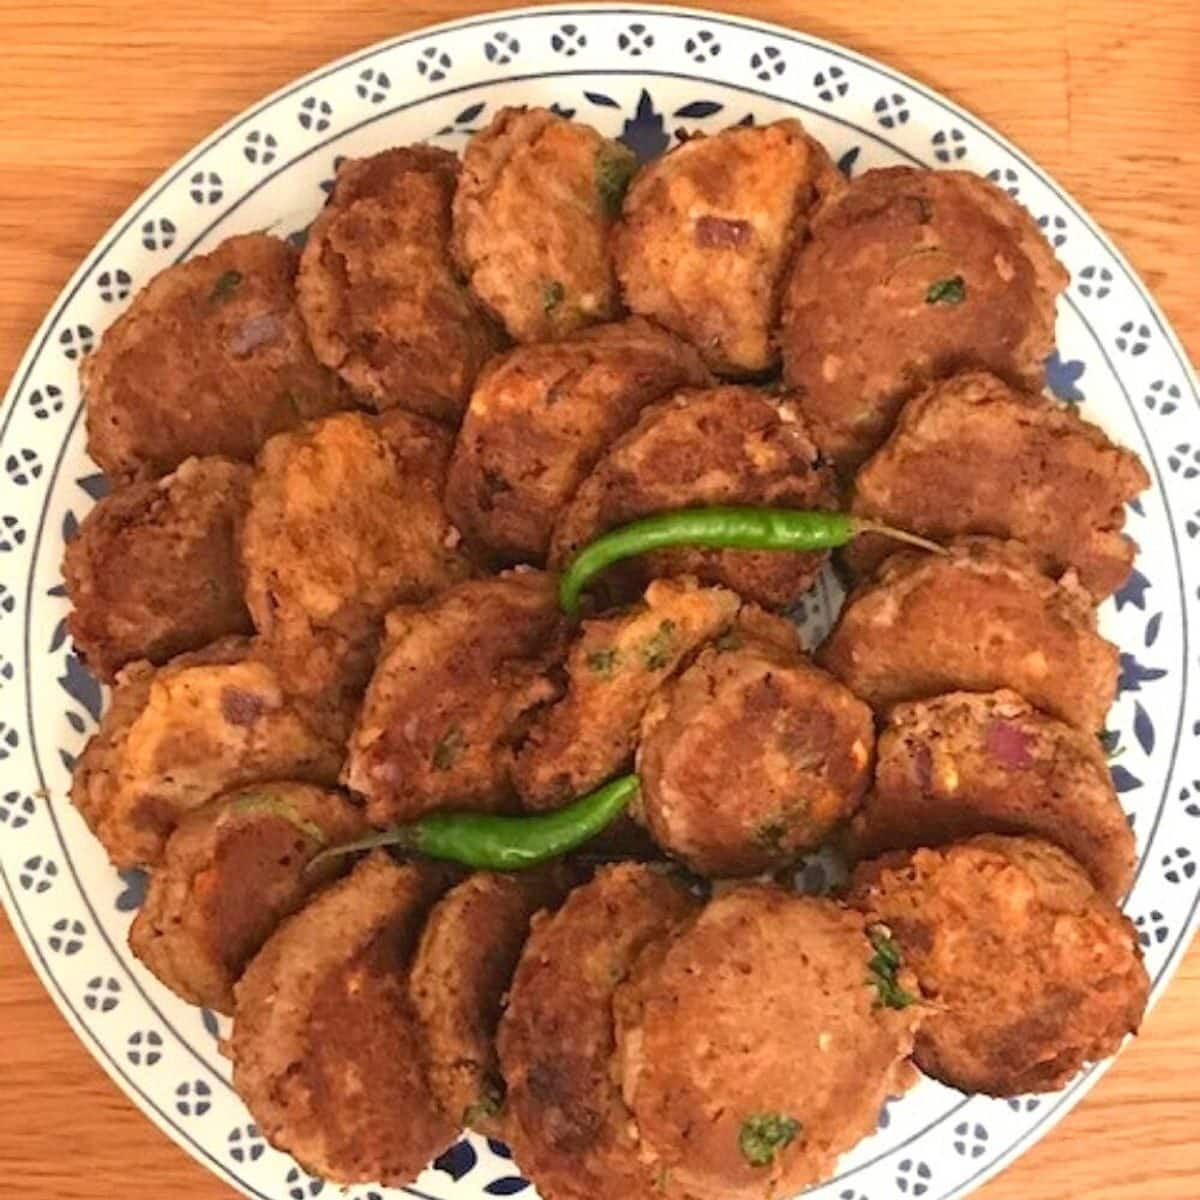 Plate of shami kebabs on round plate